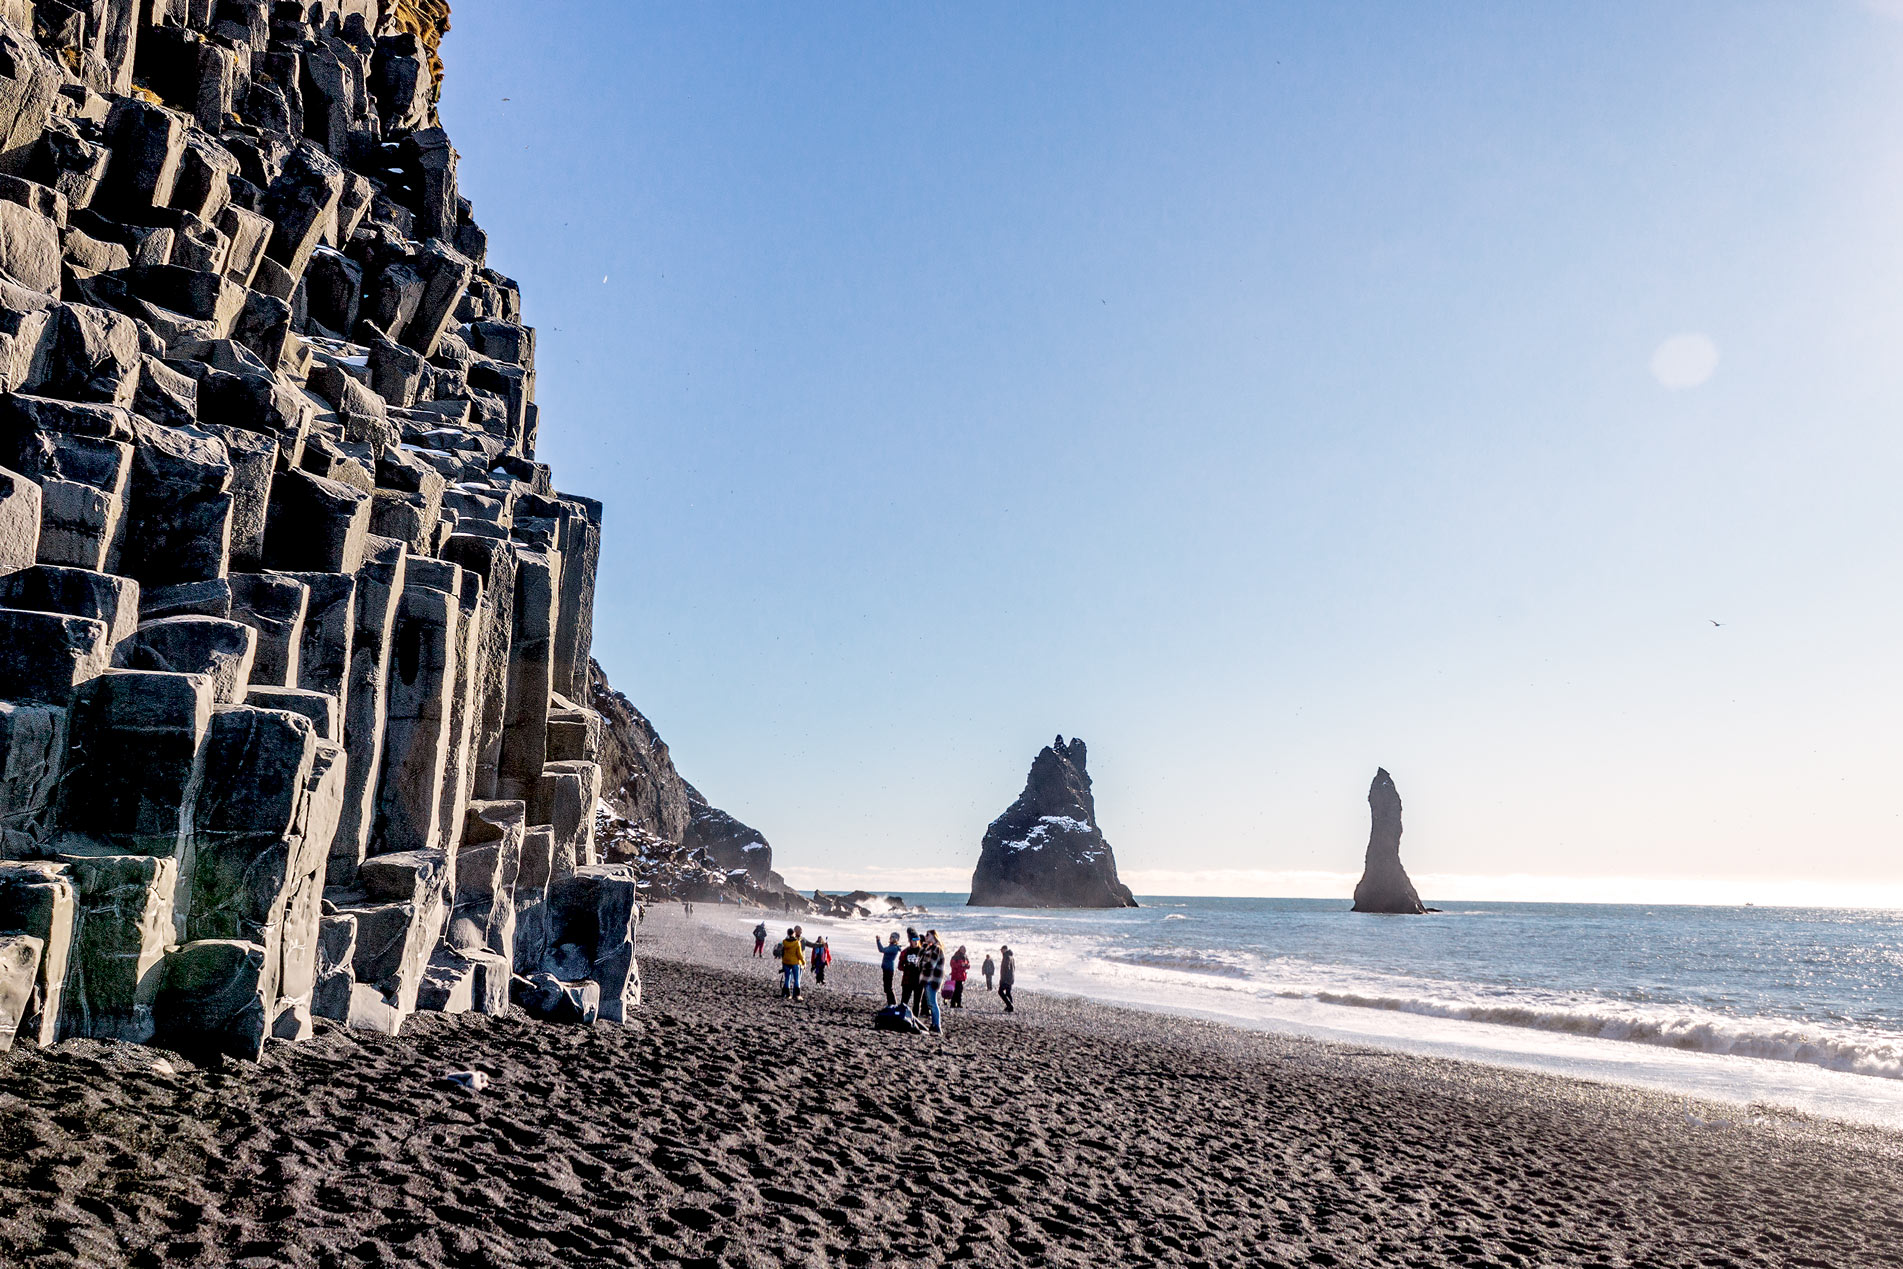 iceland 7 days reynisfjara black beach basalt